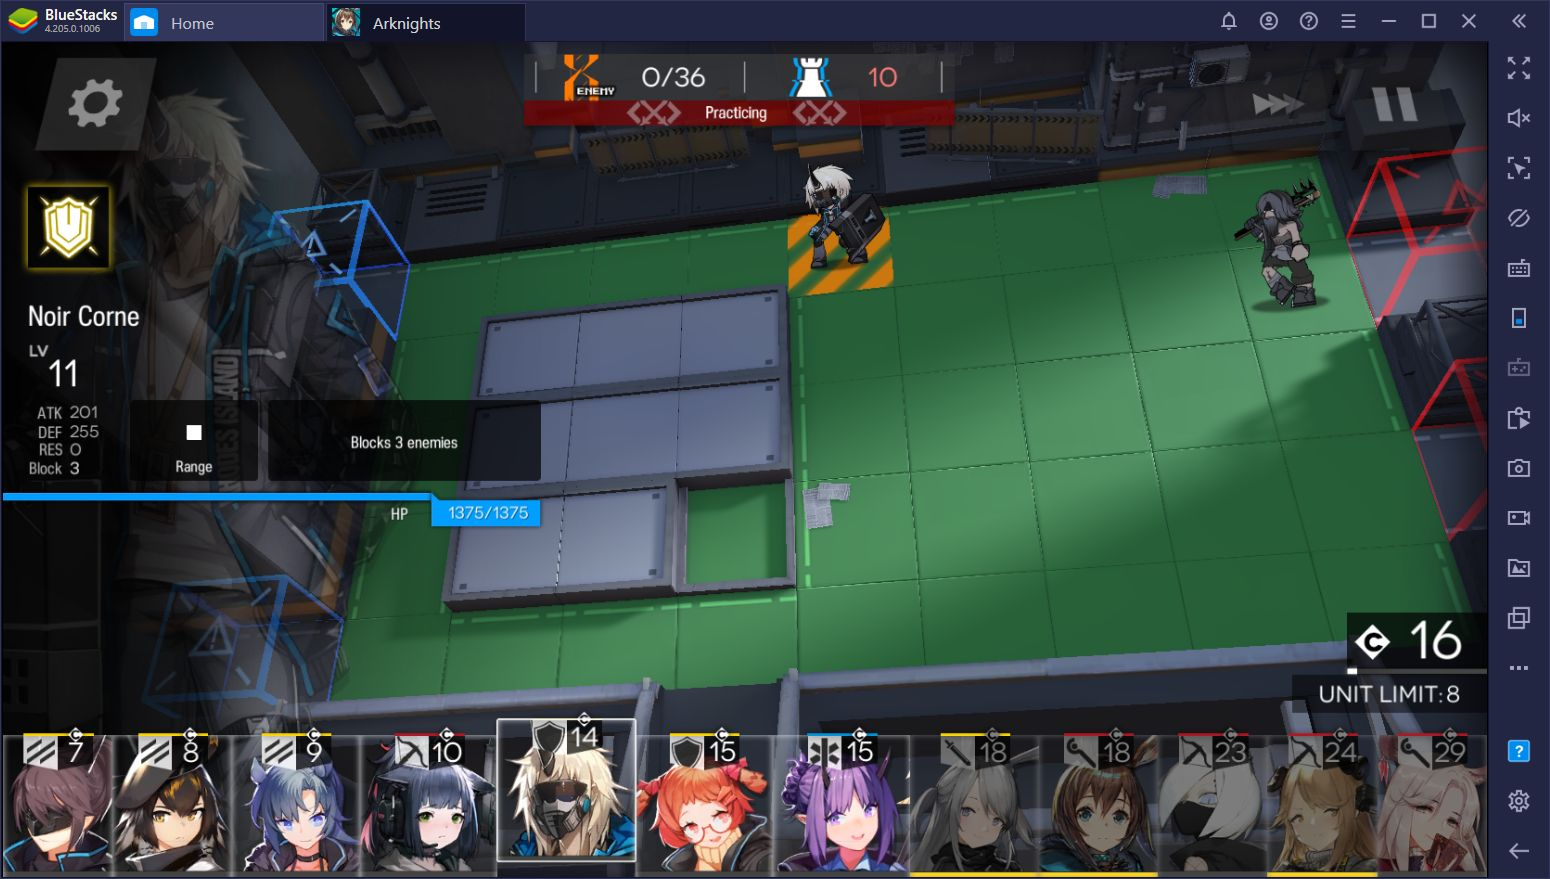 Arknights on PC - A Compilation of Tips, Guides, Tier Lists, and Articles About This Tower Defense Game